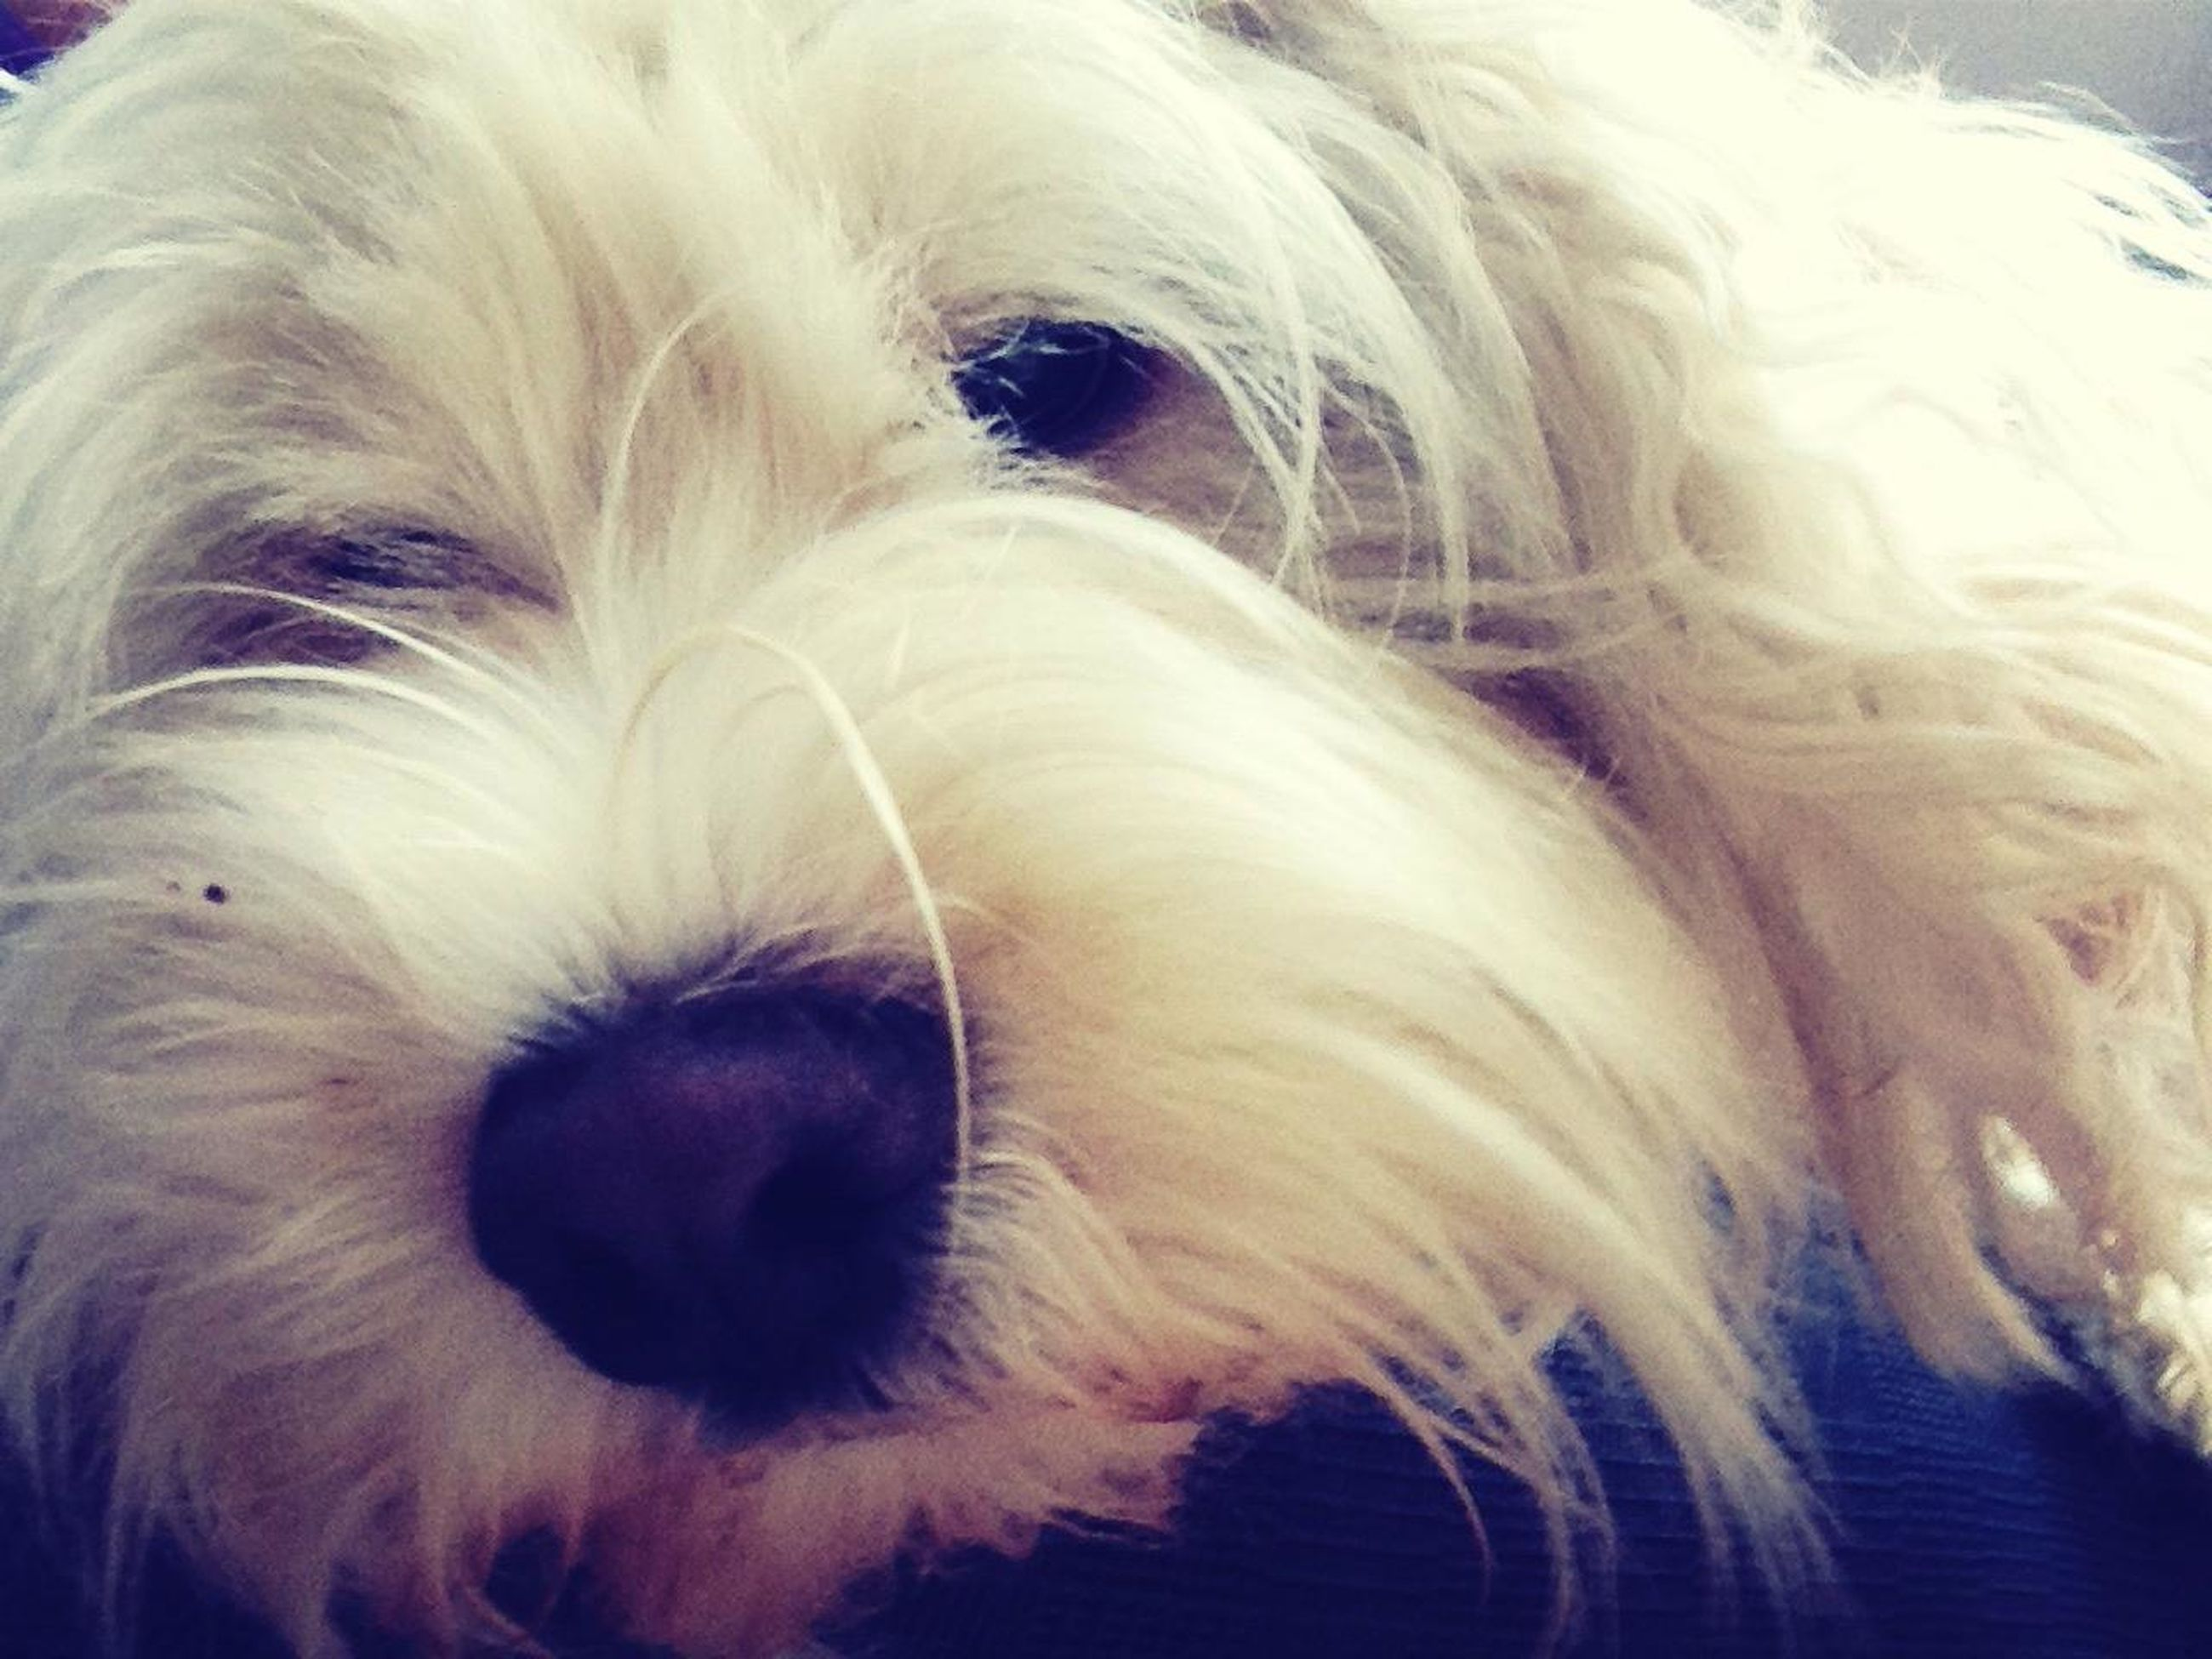 dog, domestic animals, pets, one animal, animal themes, mammal, indoors, animal hair, close-up, animal head, animal body part, no people, animal nose, relaxation, resting, white color, snout, pampered pets, loyalty, puppy